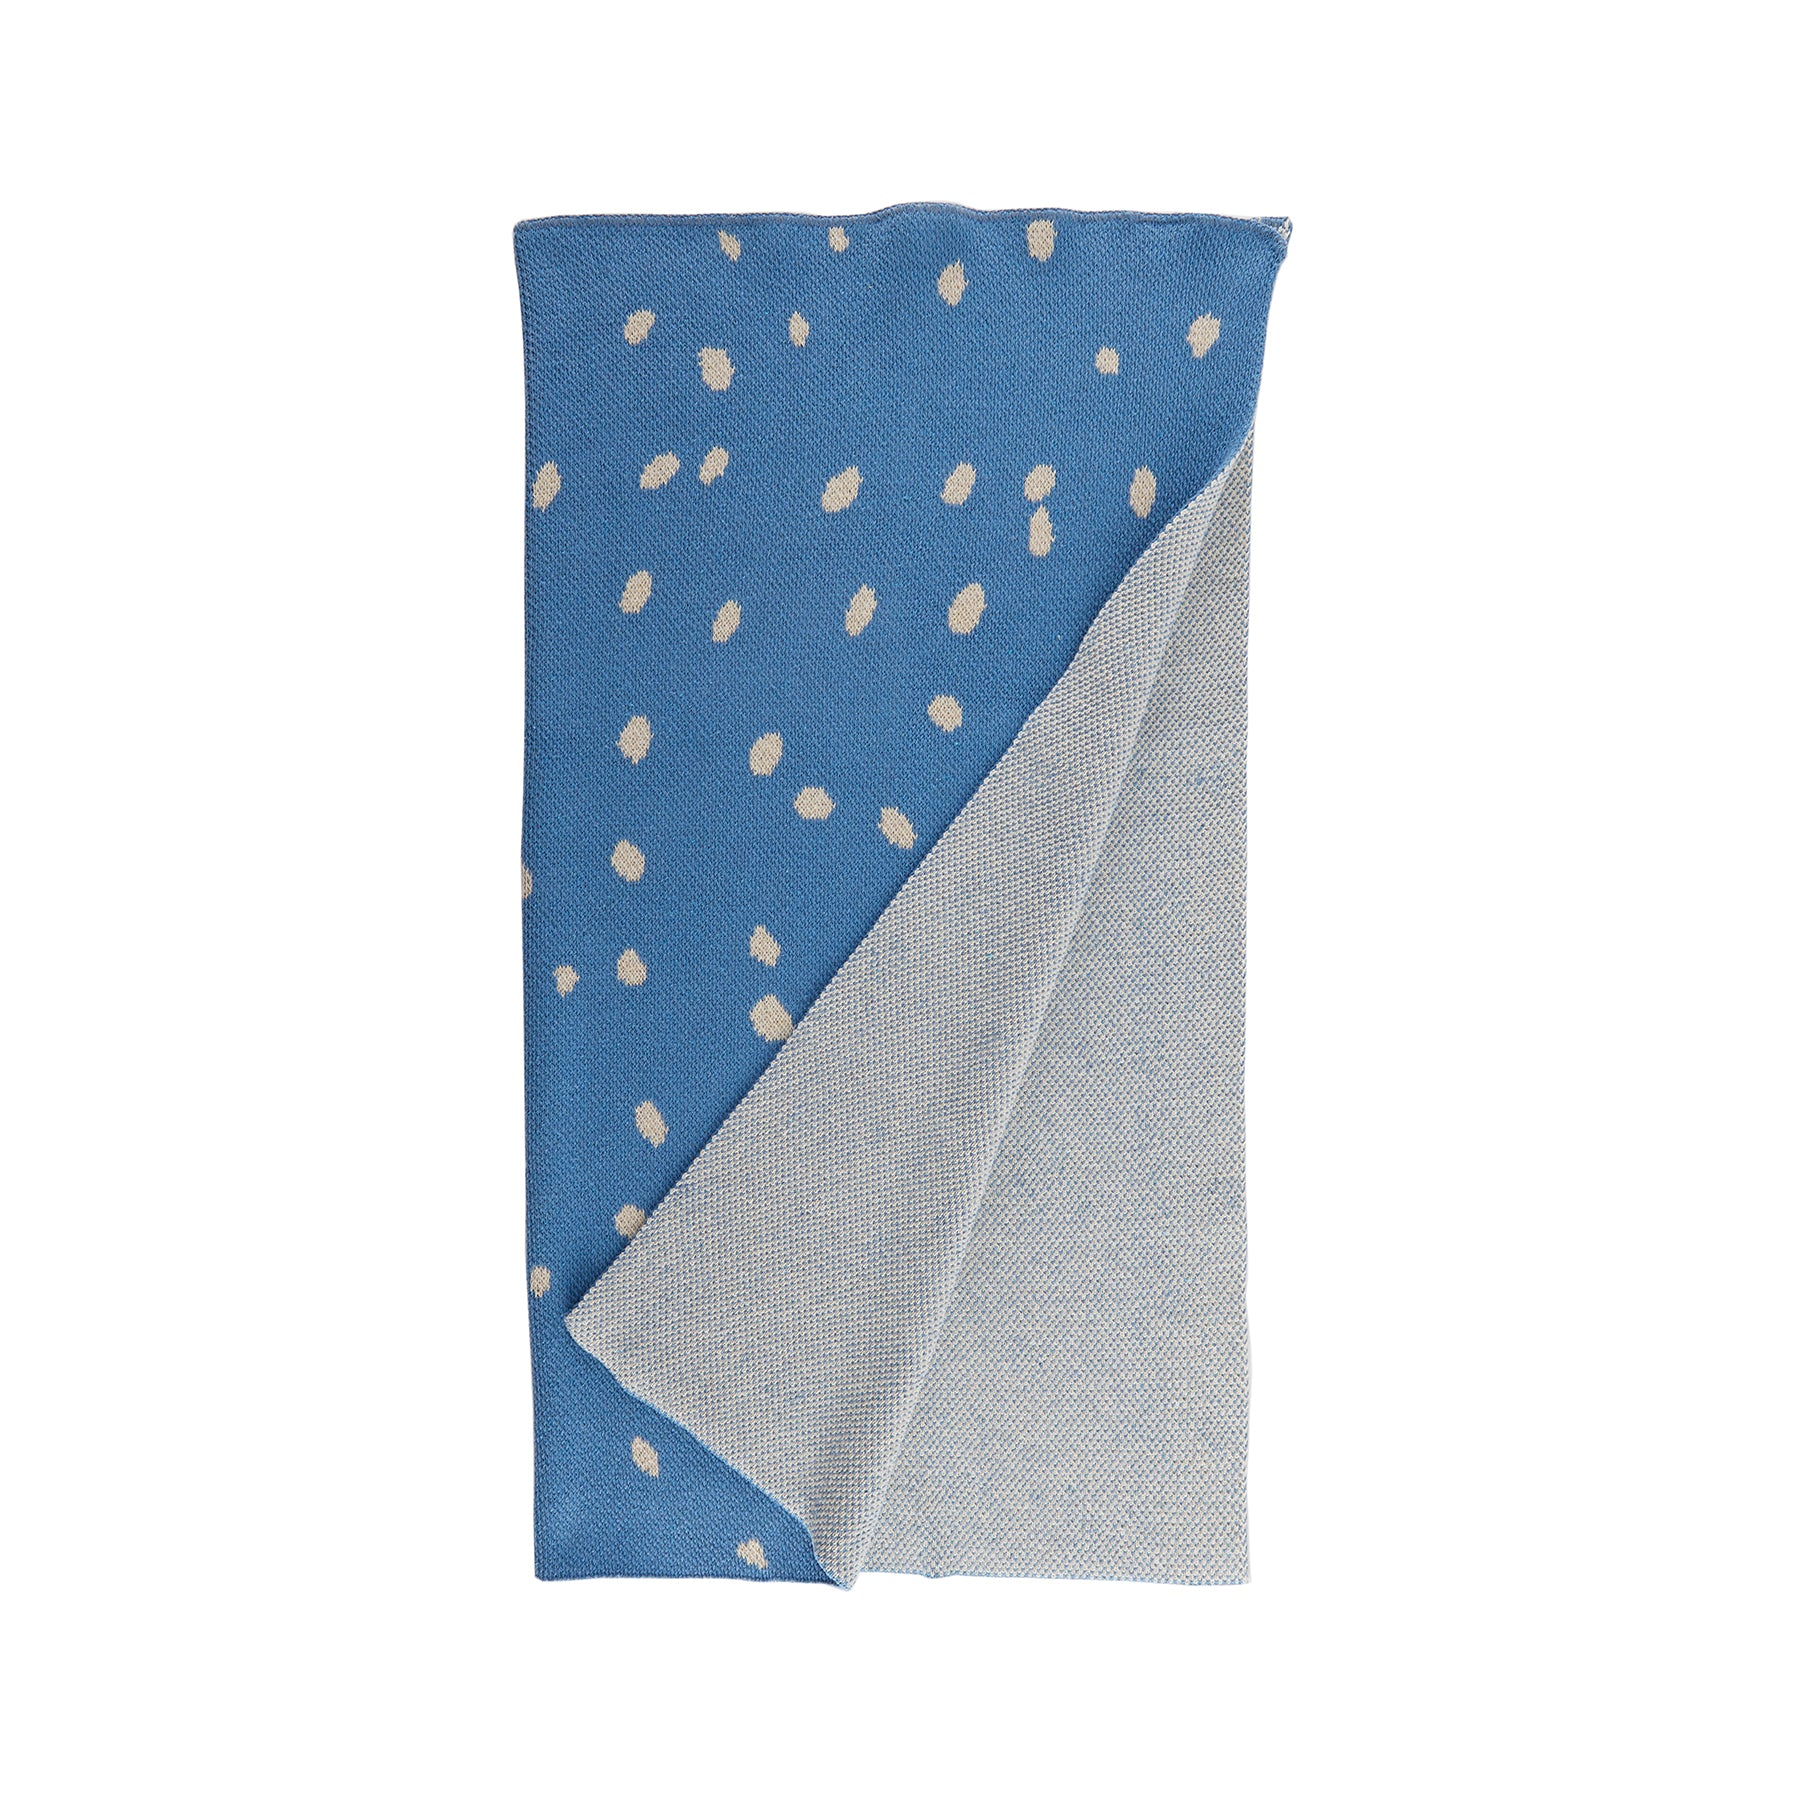 Kids Dot Blanket in Blue Zoom Image 1